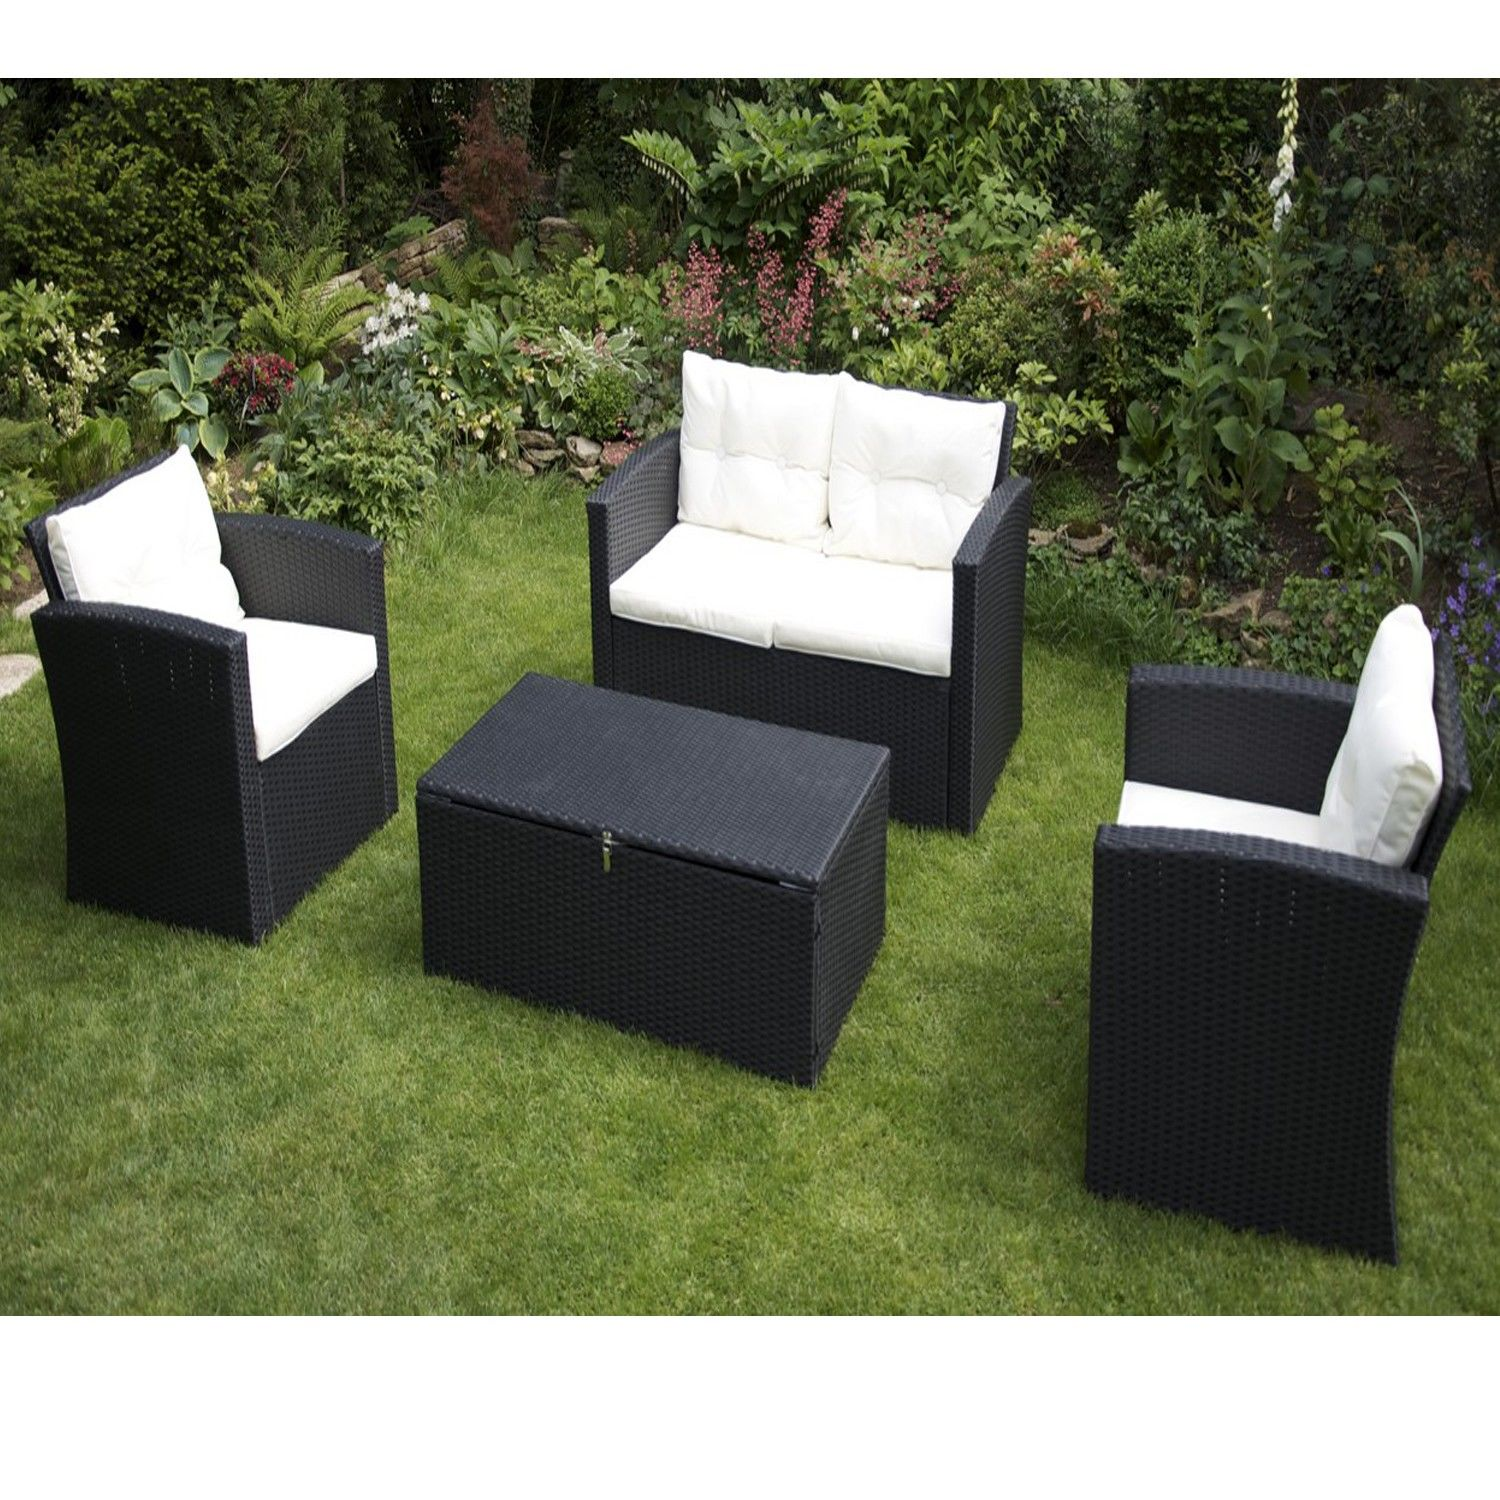 g nial salon de jardin encastrable pas cher id es de salon de jardin. Black Bedroom Furniture Sets. Home Design Ideas